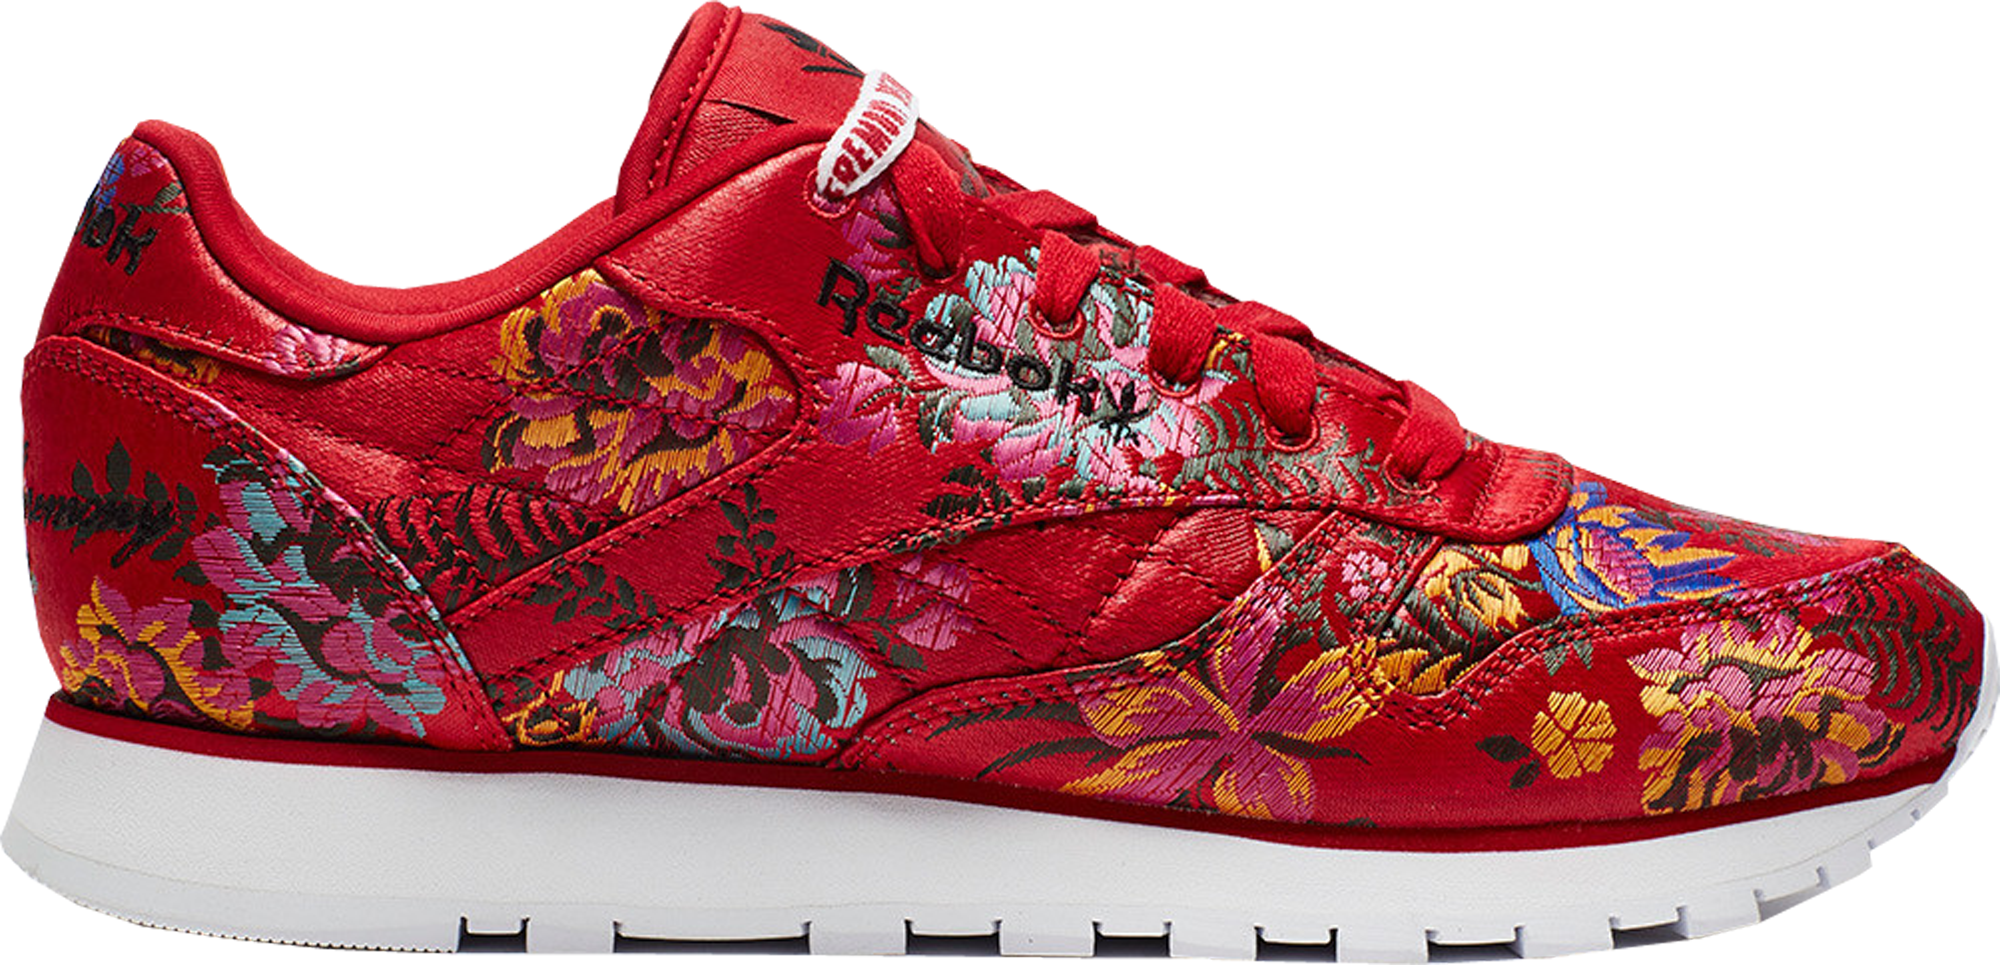 Reebok Classic Leather Opening Ceremony Floral Satin Red